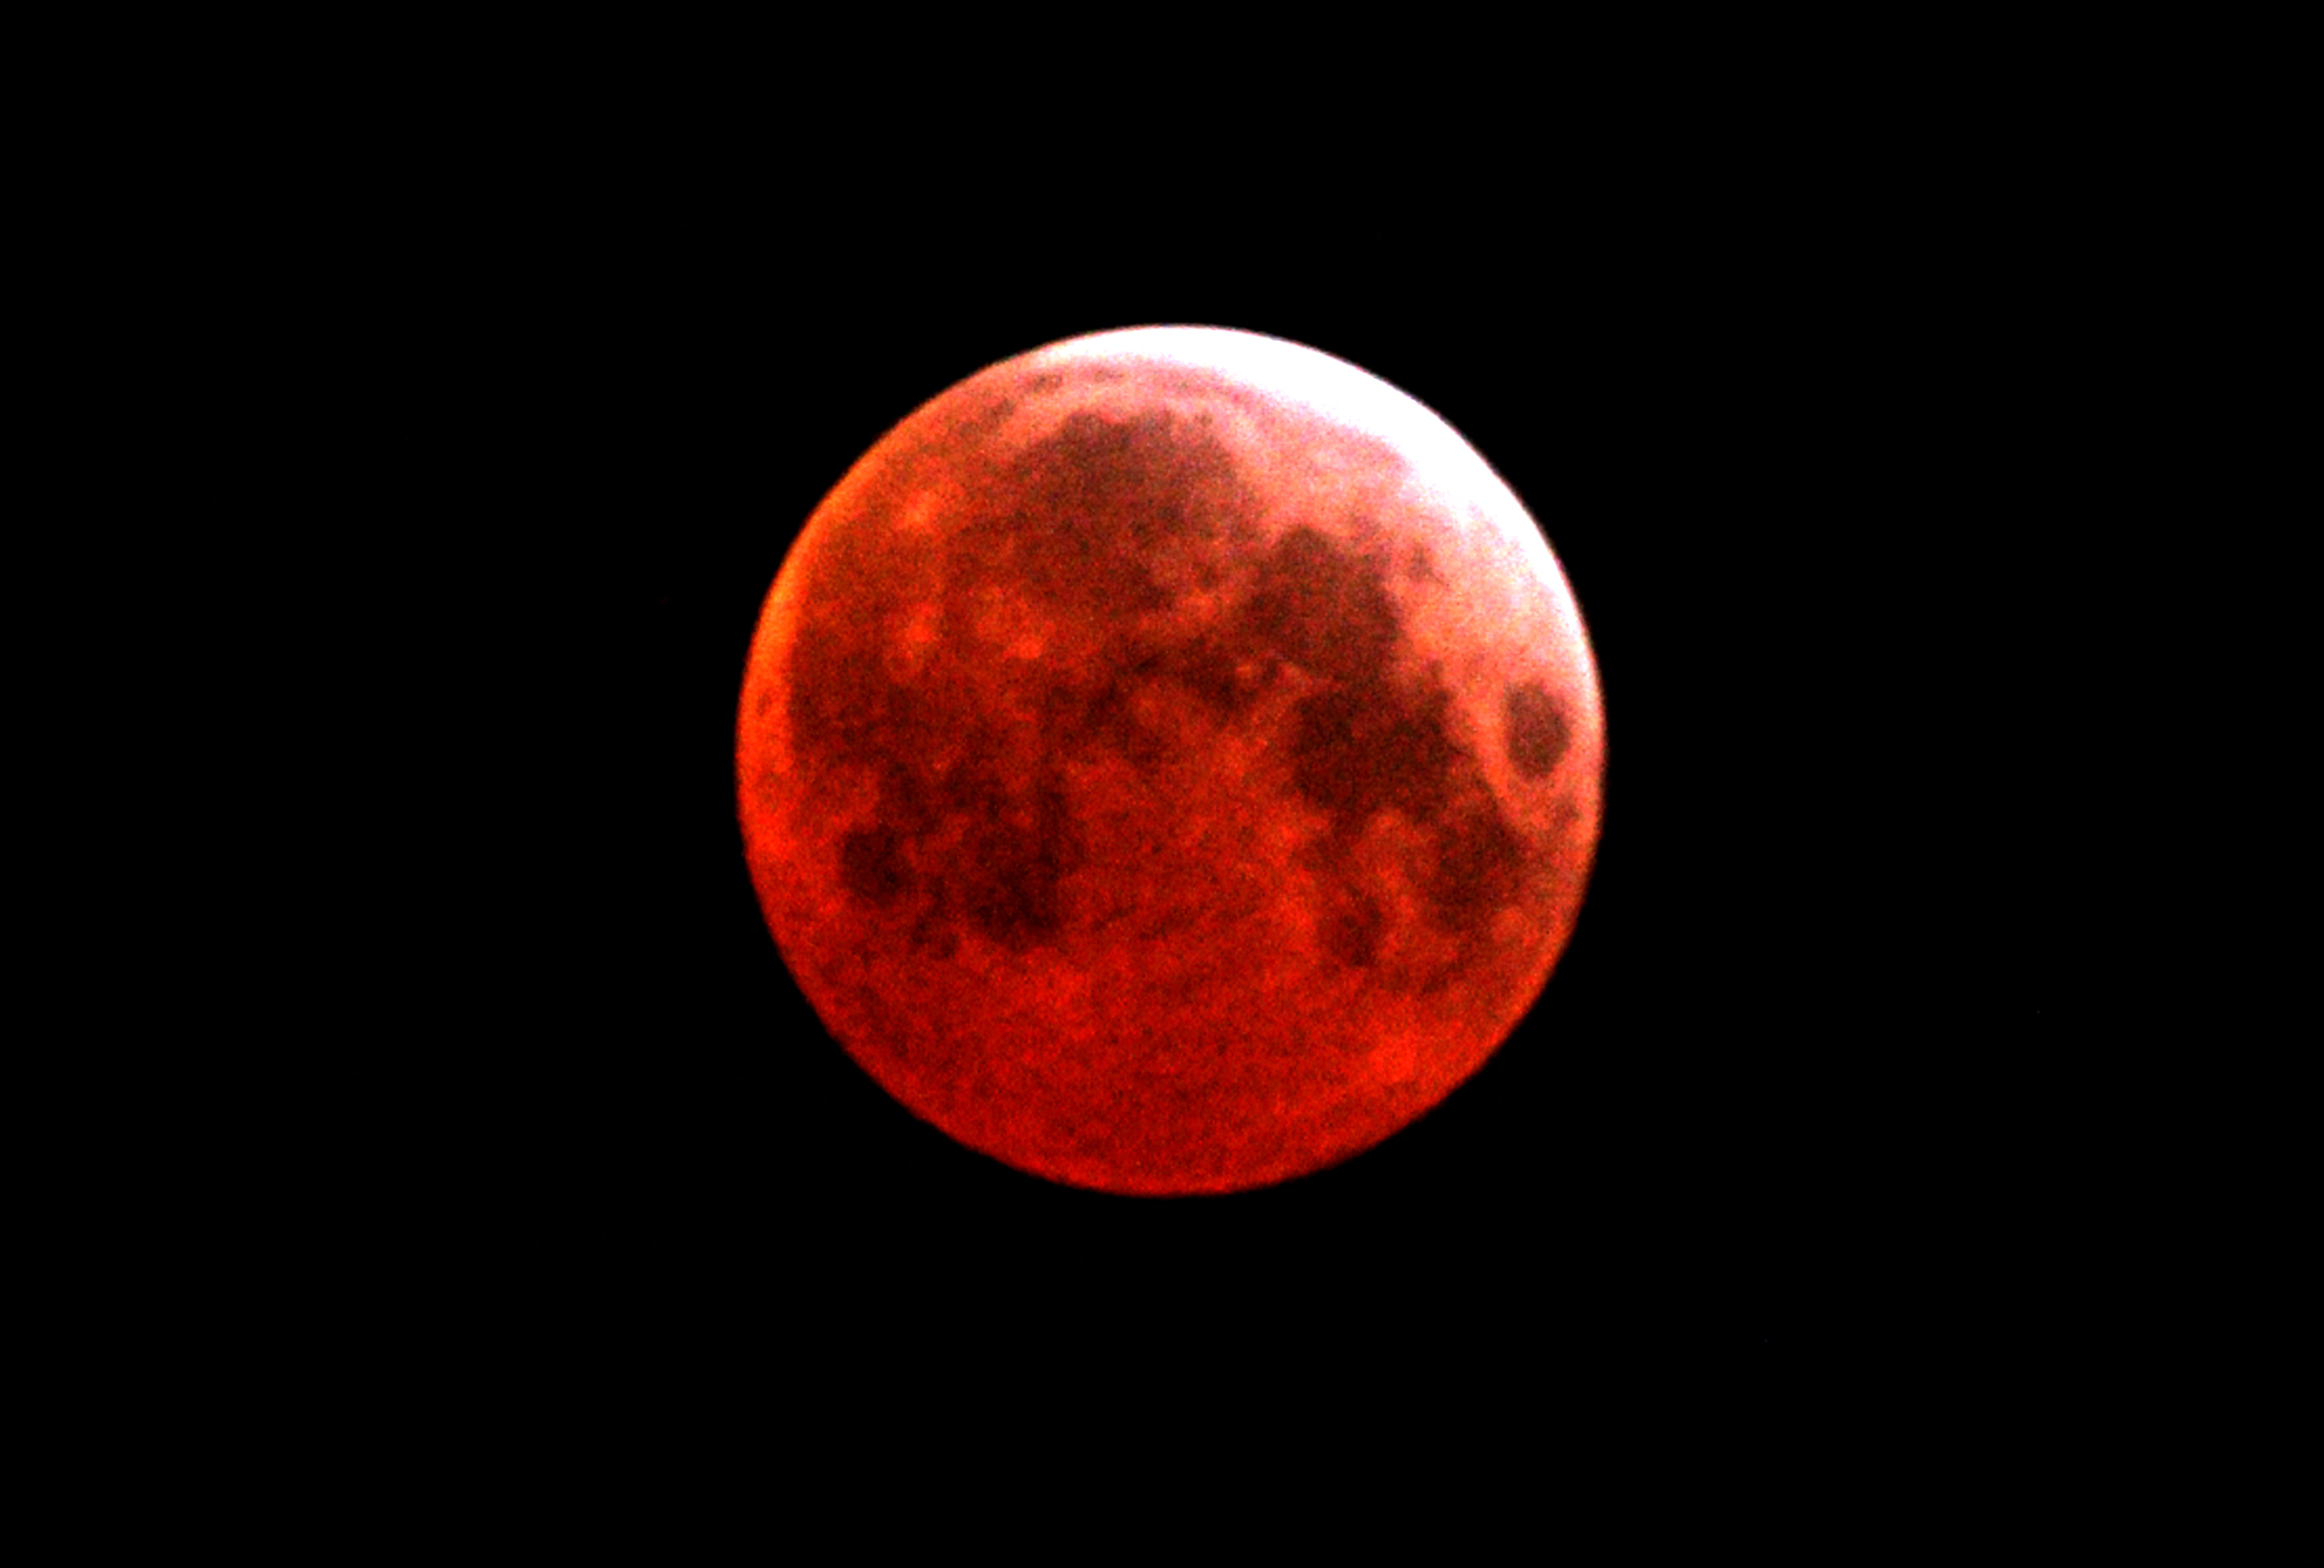 blood moon july 2018 new zealand - photo #13